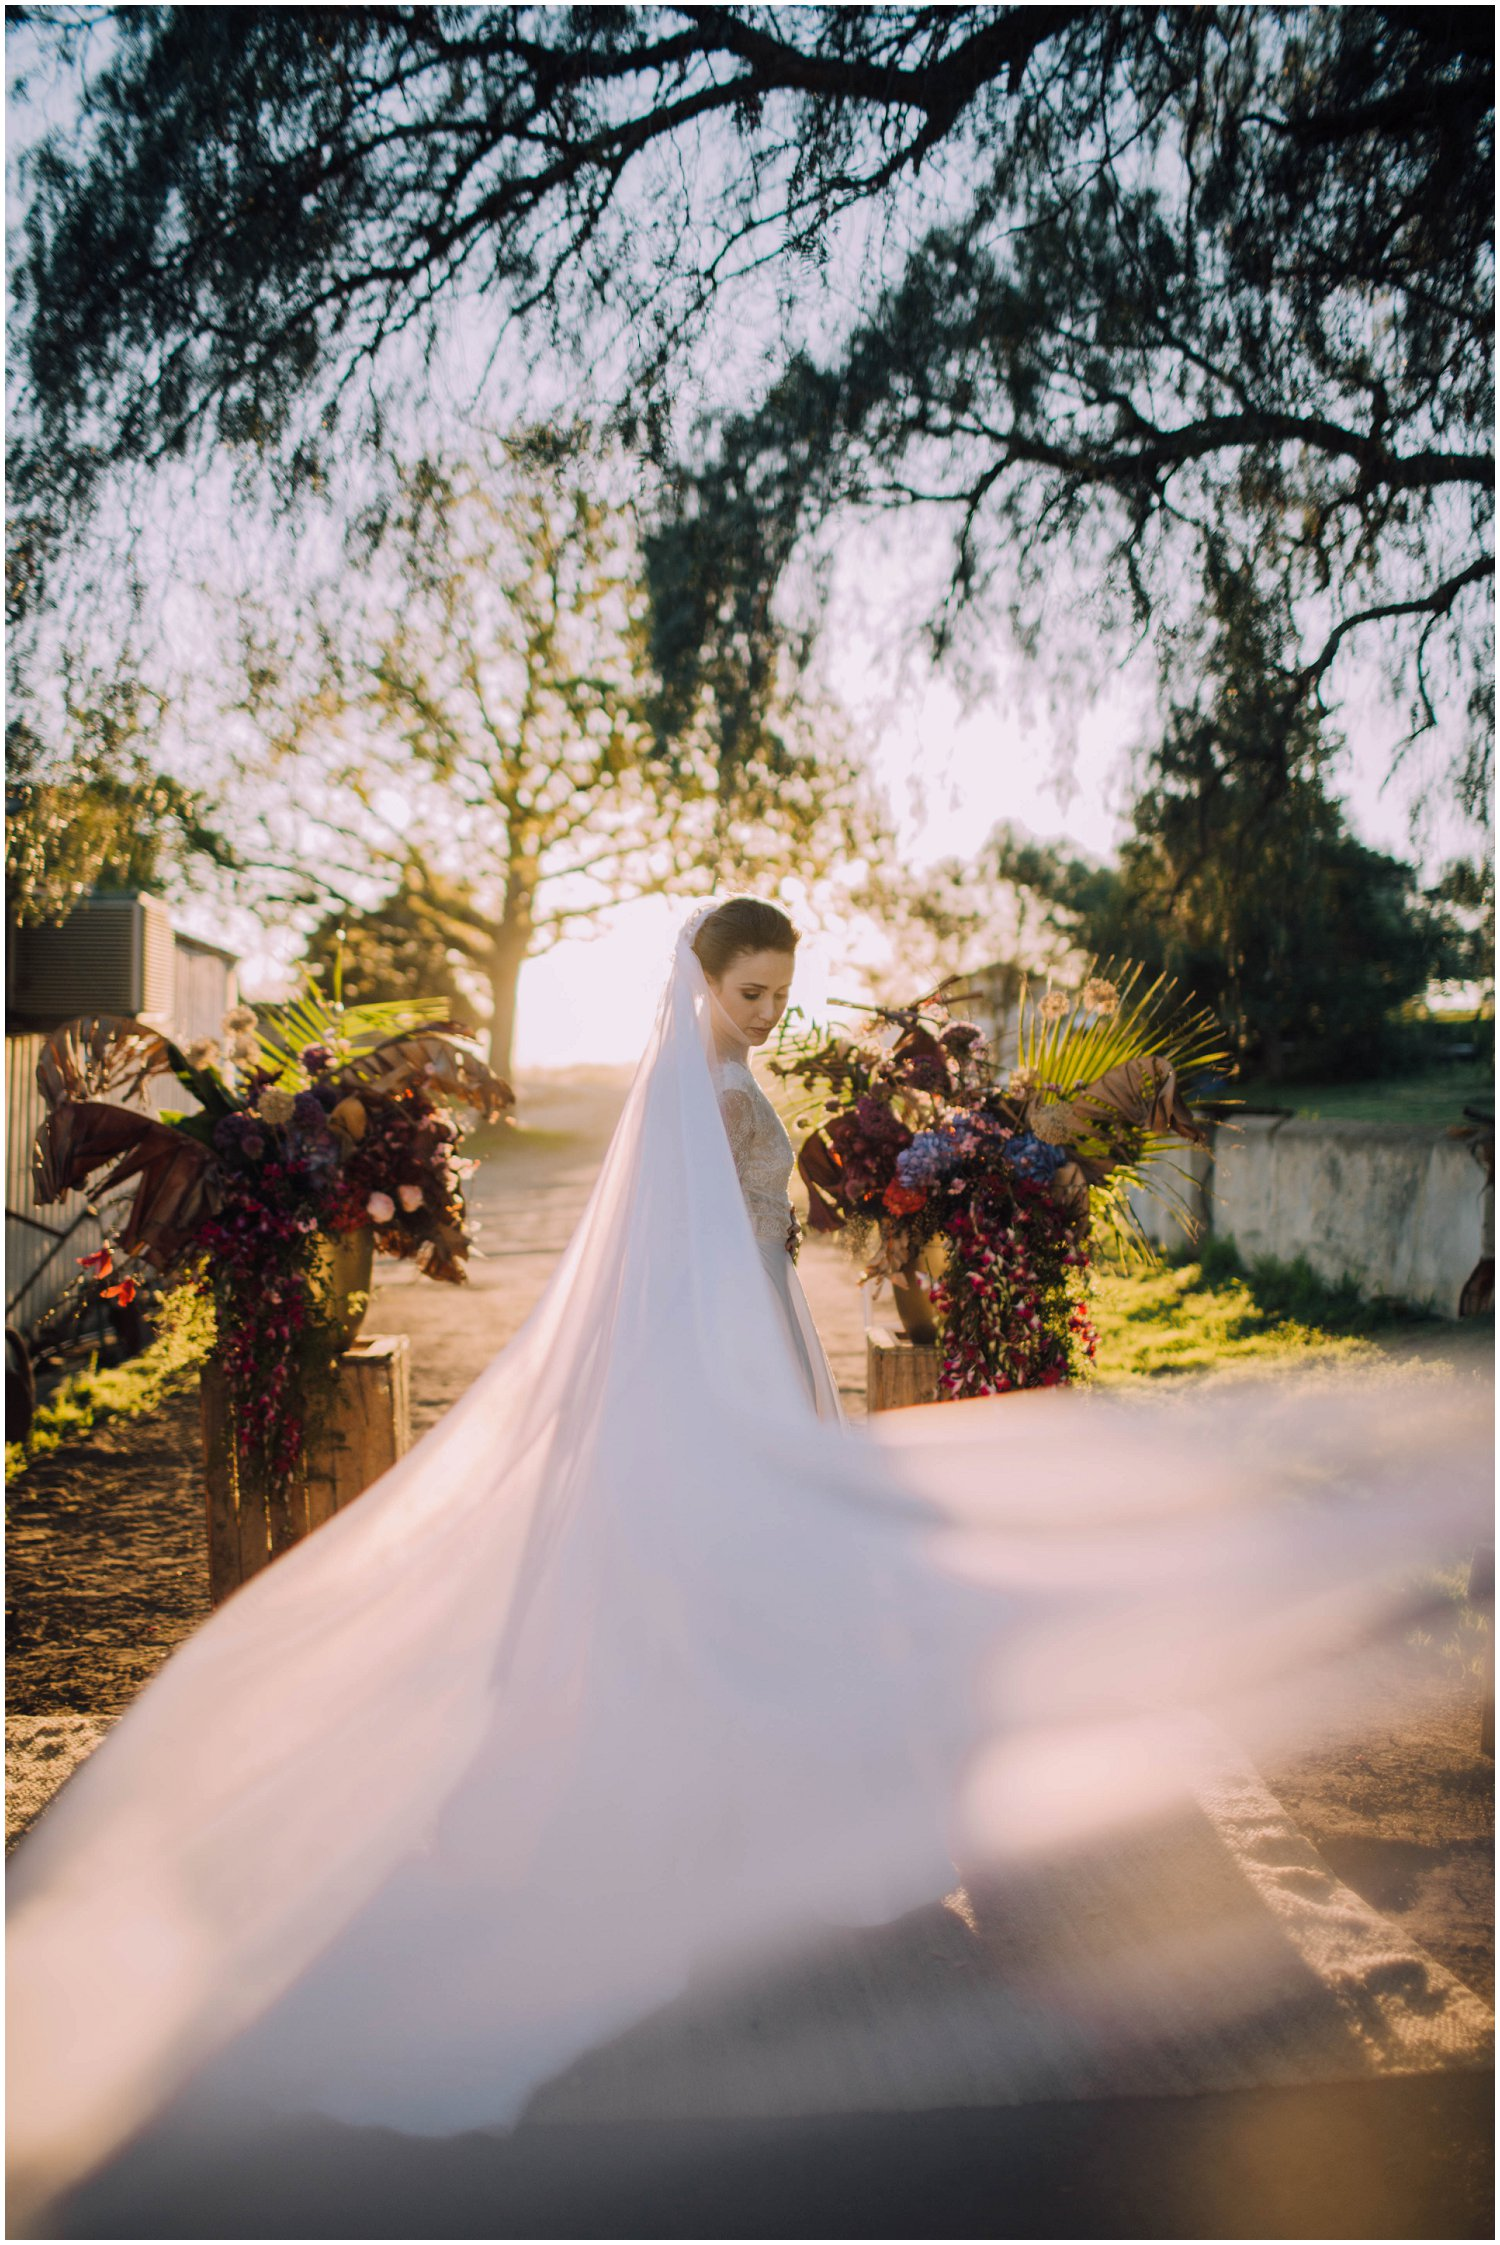 Top Wedding Photographer Cape Town South Africa Artistic Creative Documentary Wedding Photography Rue Kruger_1237.jpg